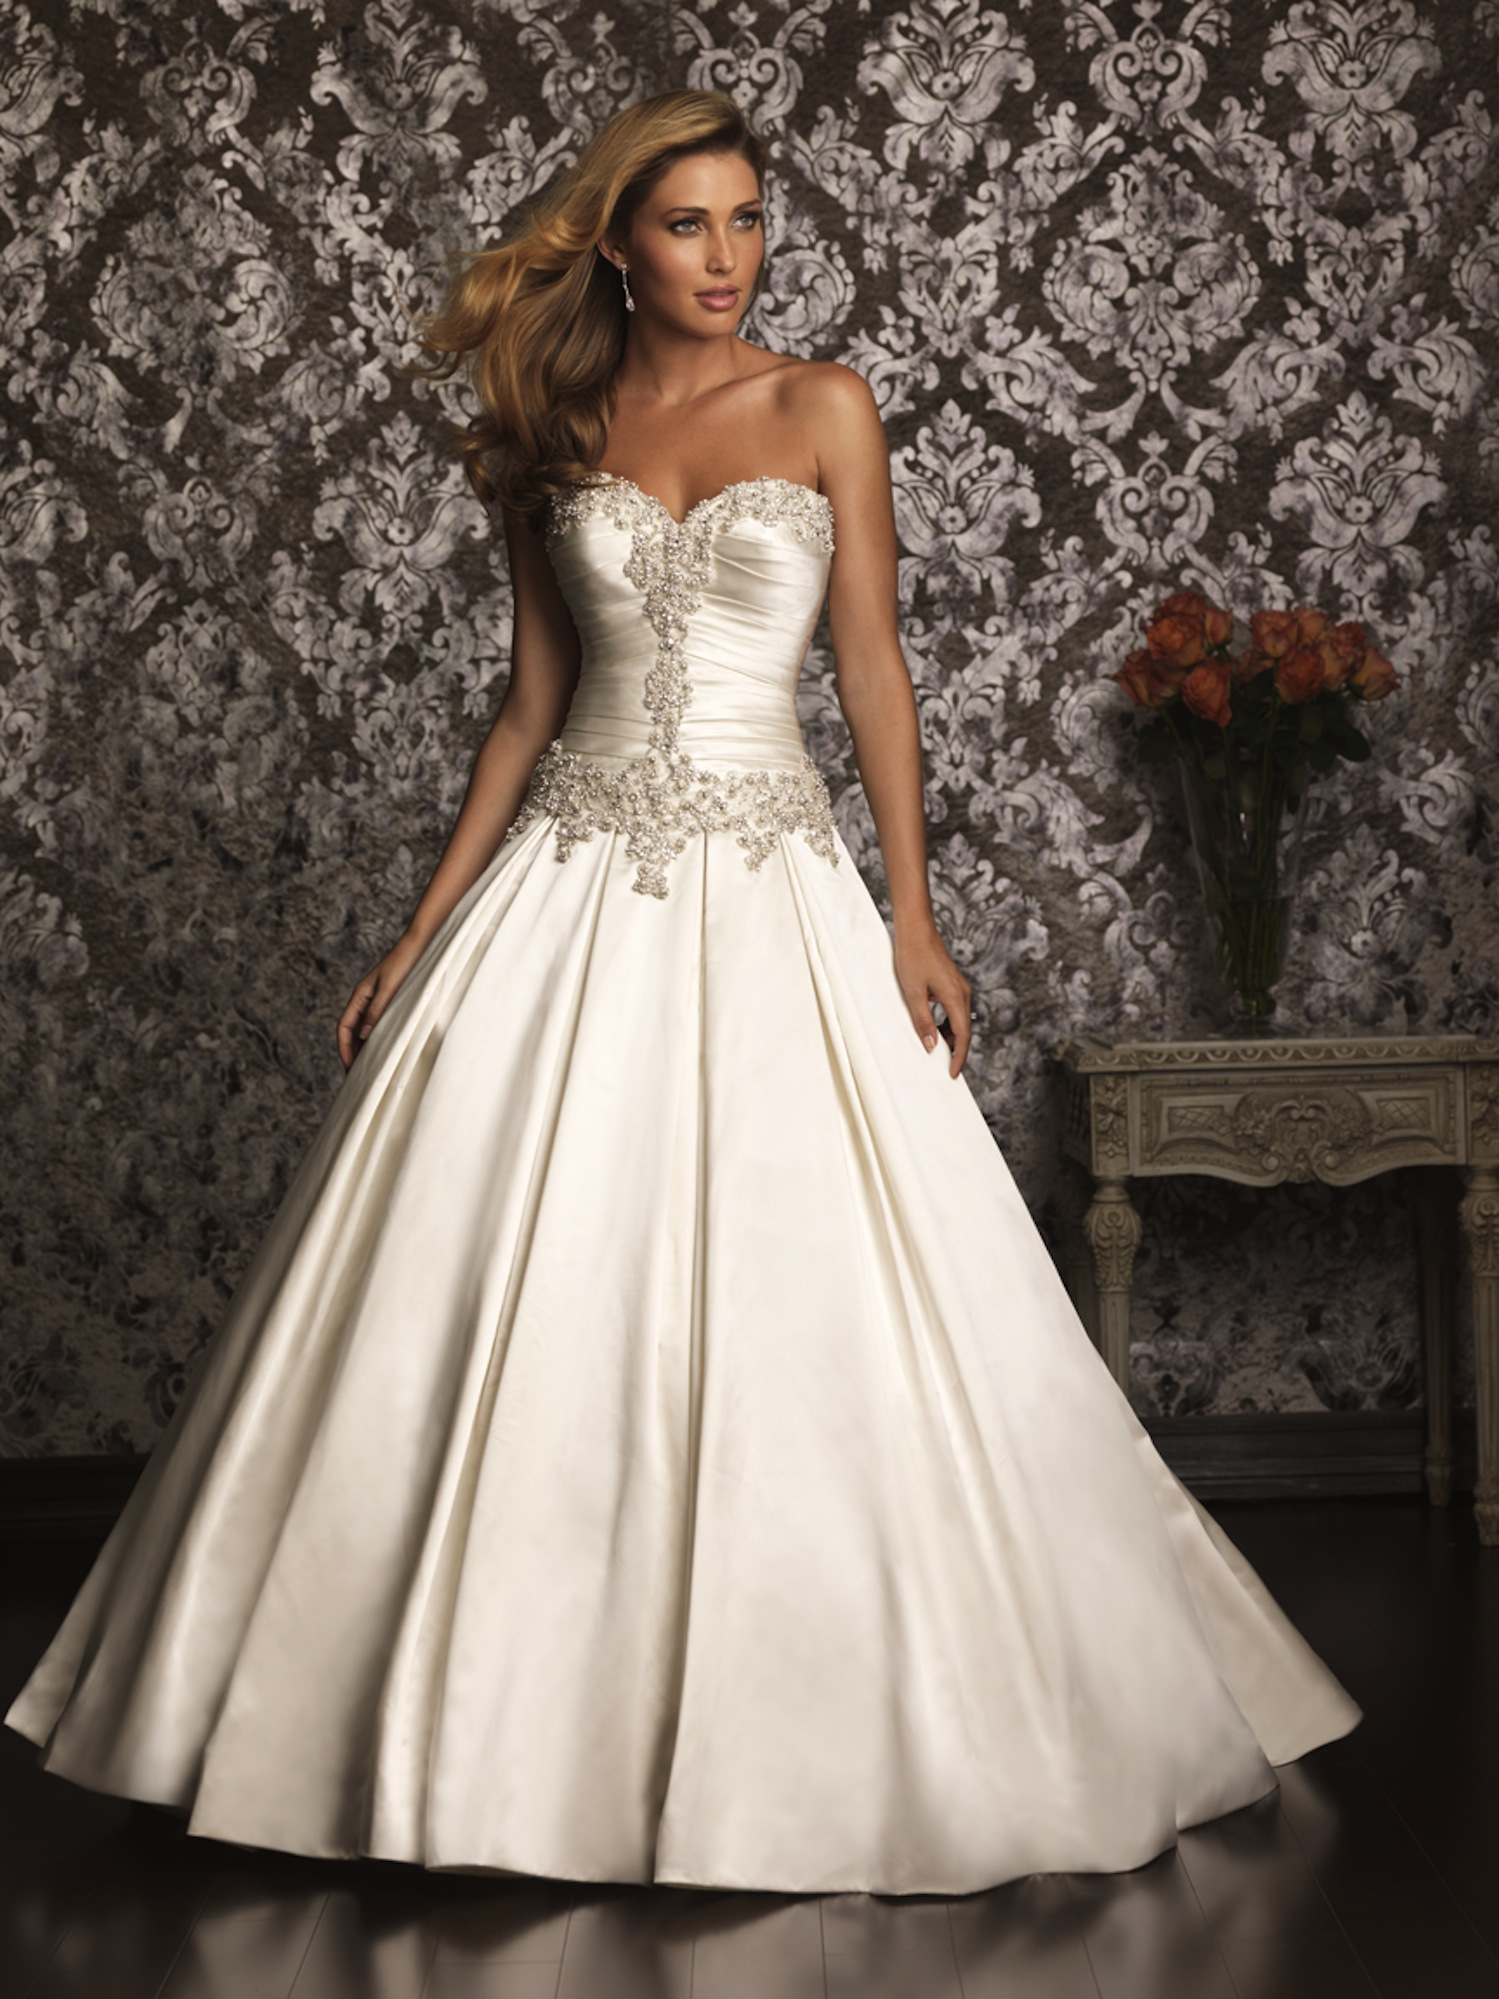 Allure Bridals Wedding Dress Bridal Gown Allure Collection ...